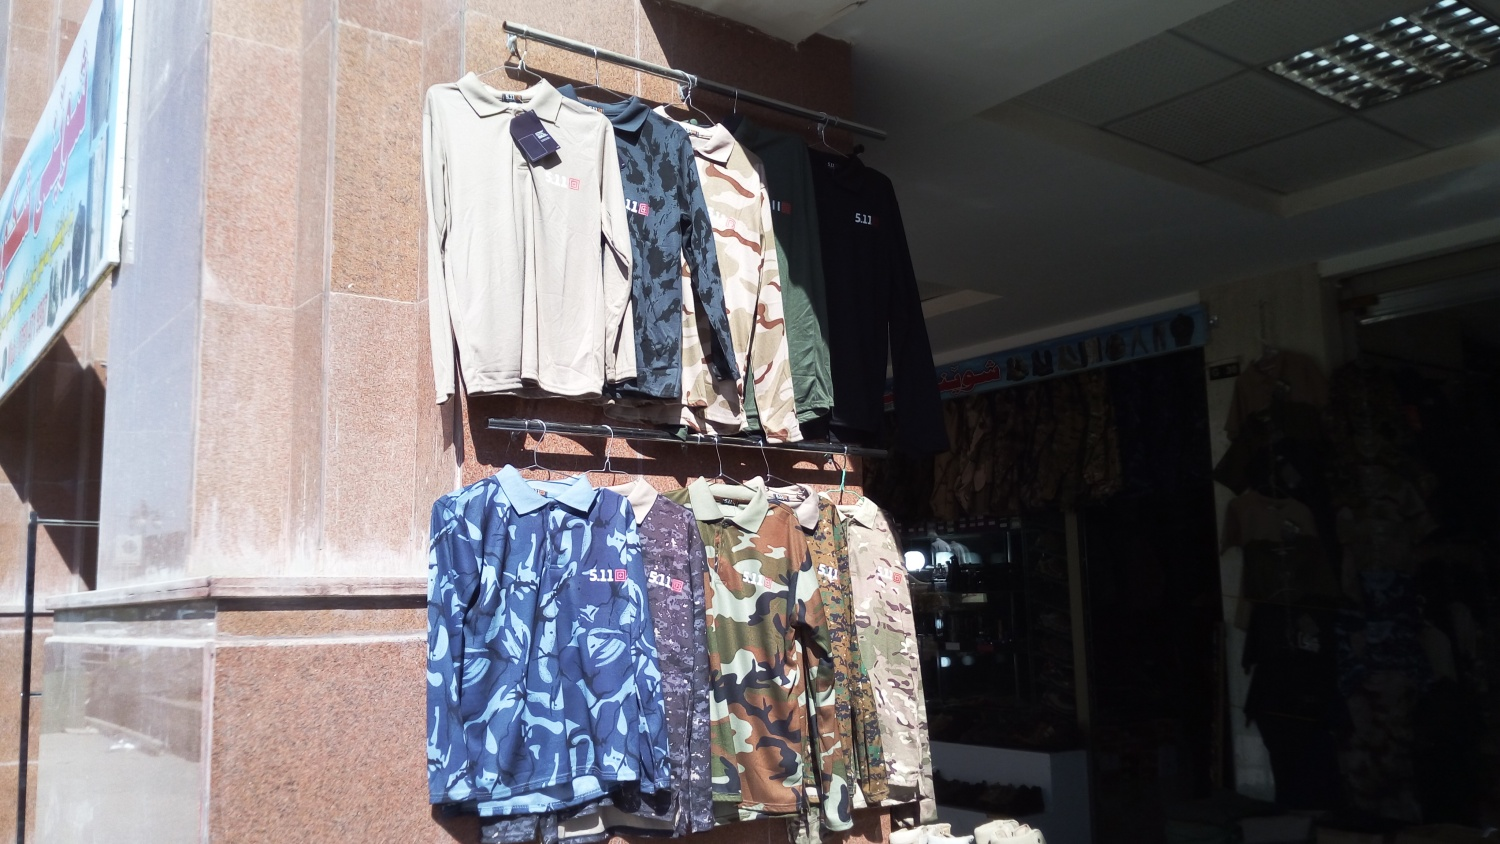 In Erbil, you can always find the latest tactical apparel. Just do not look up those models on official 5.11 website.